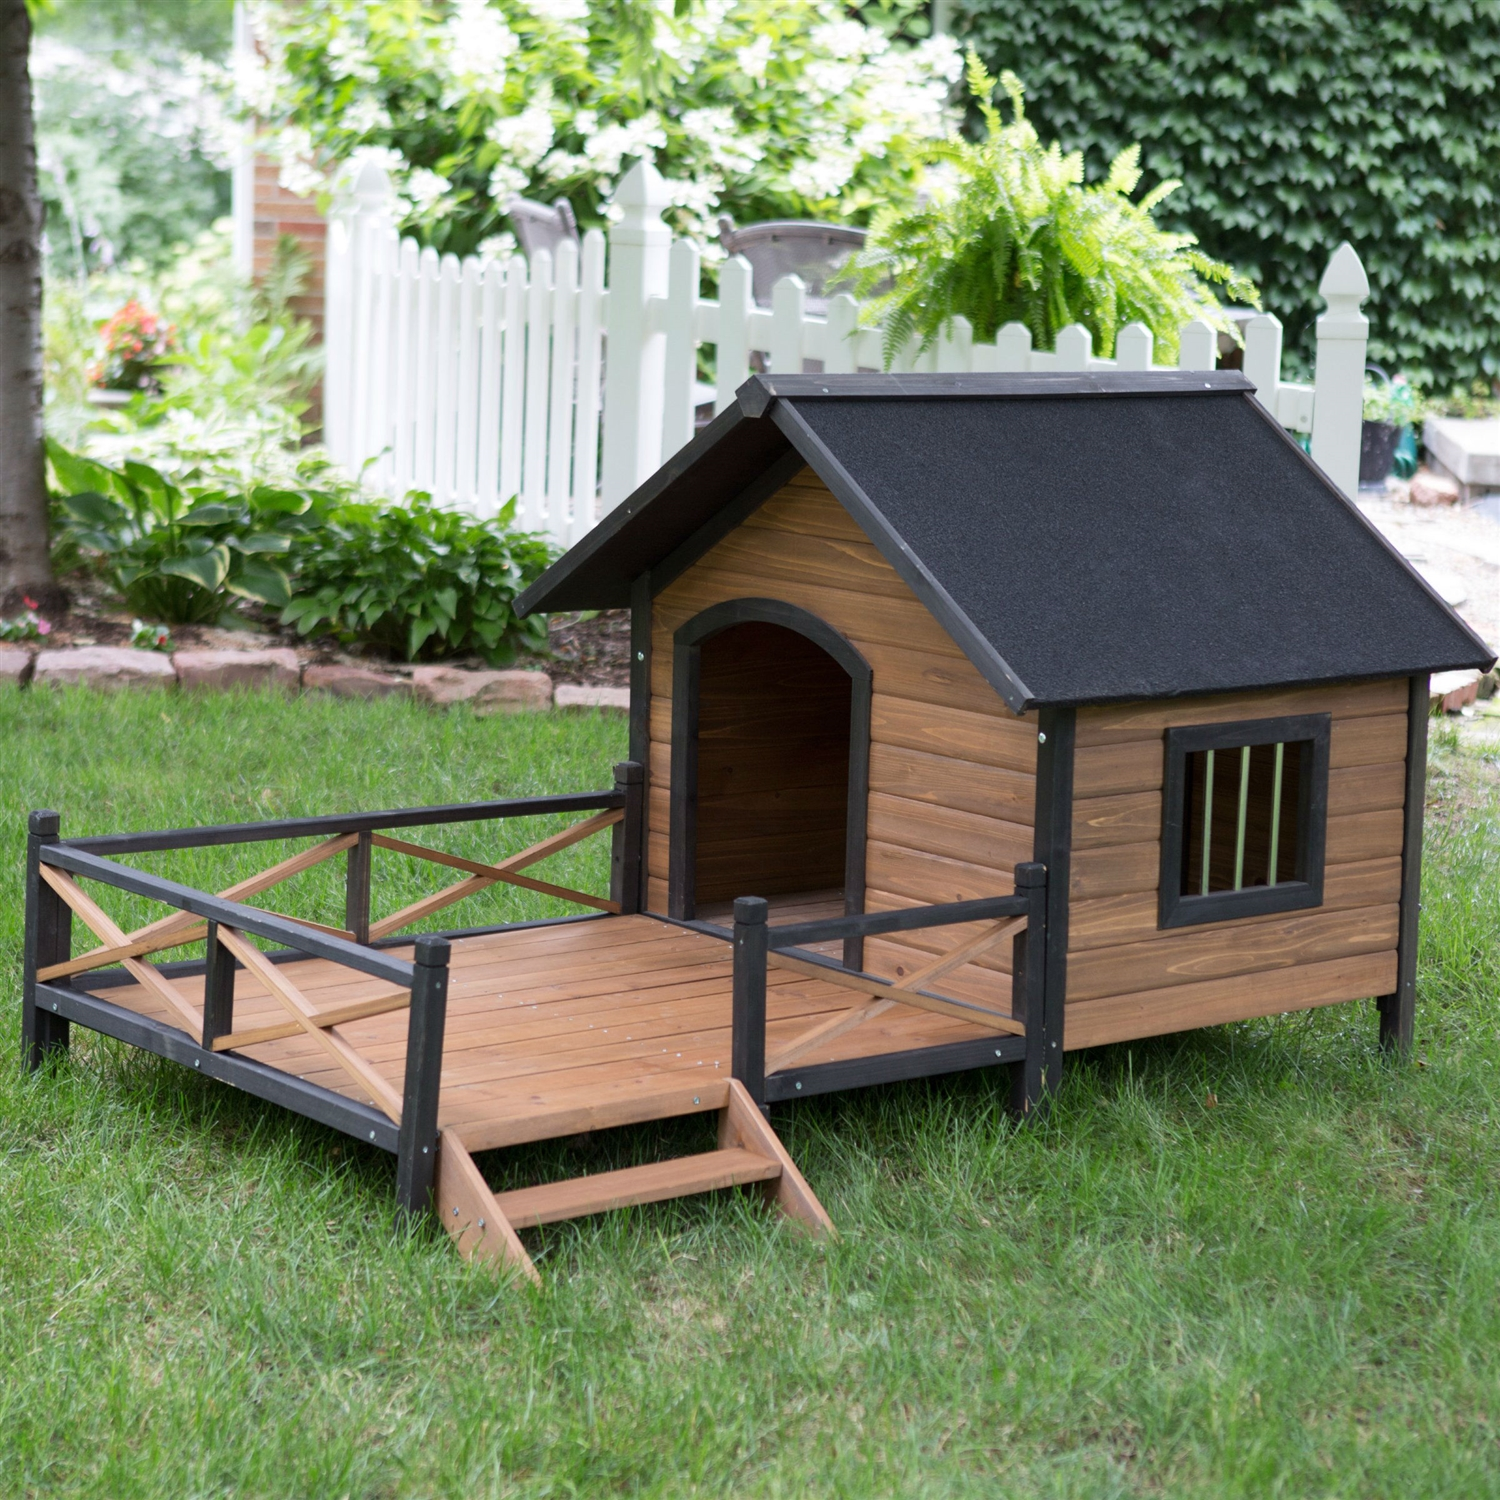 Dog House Large Solid Wood Outdoor Dog House With Spacious Deck Porch